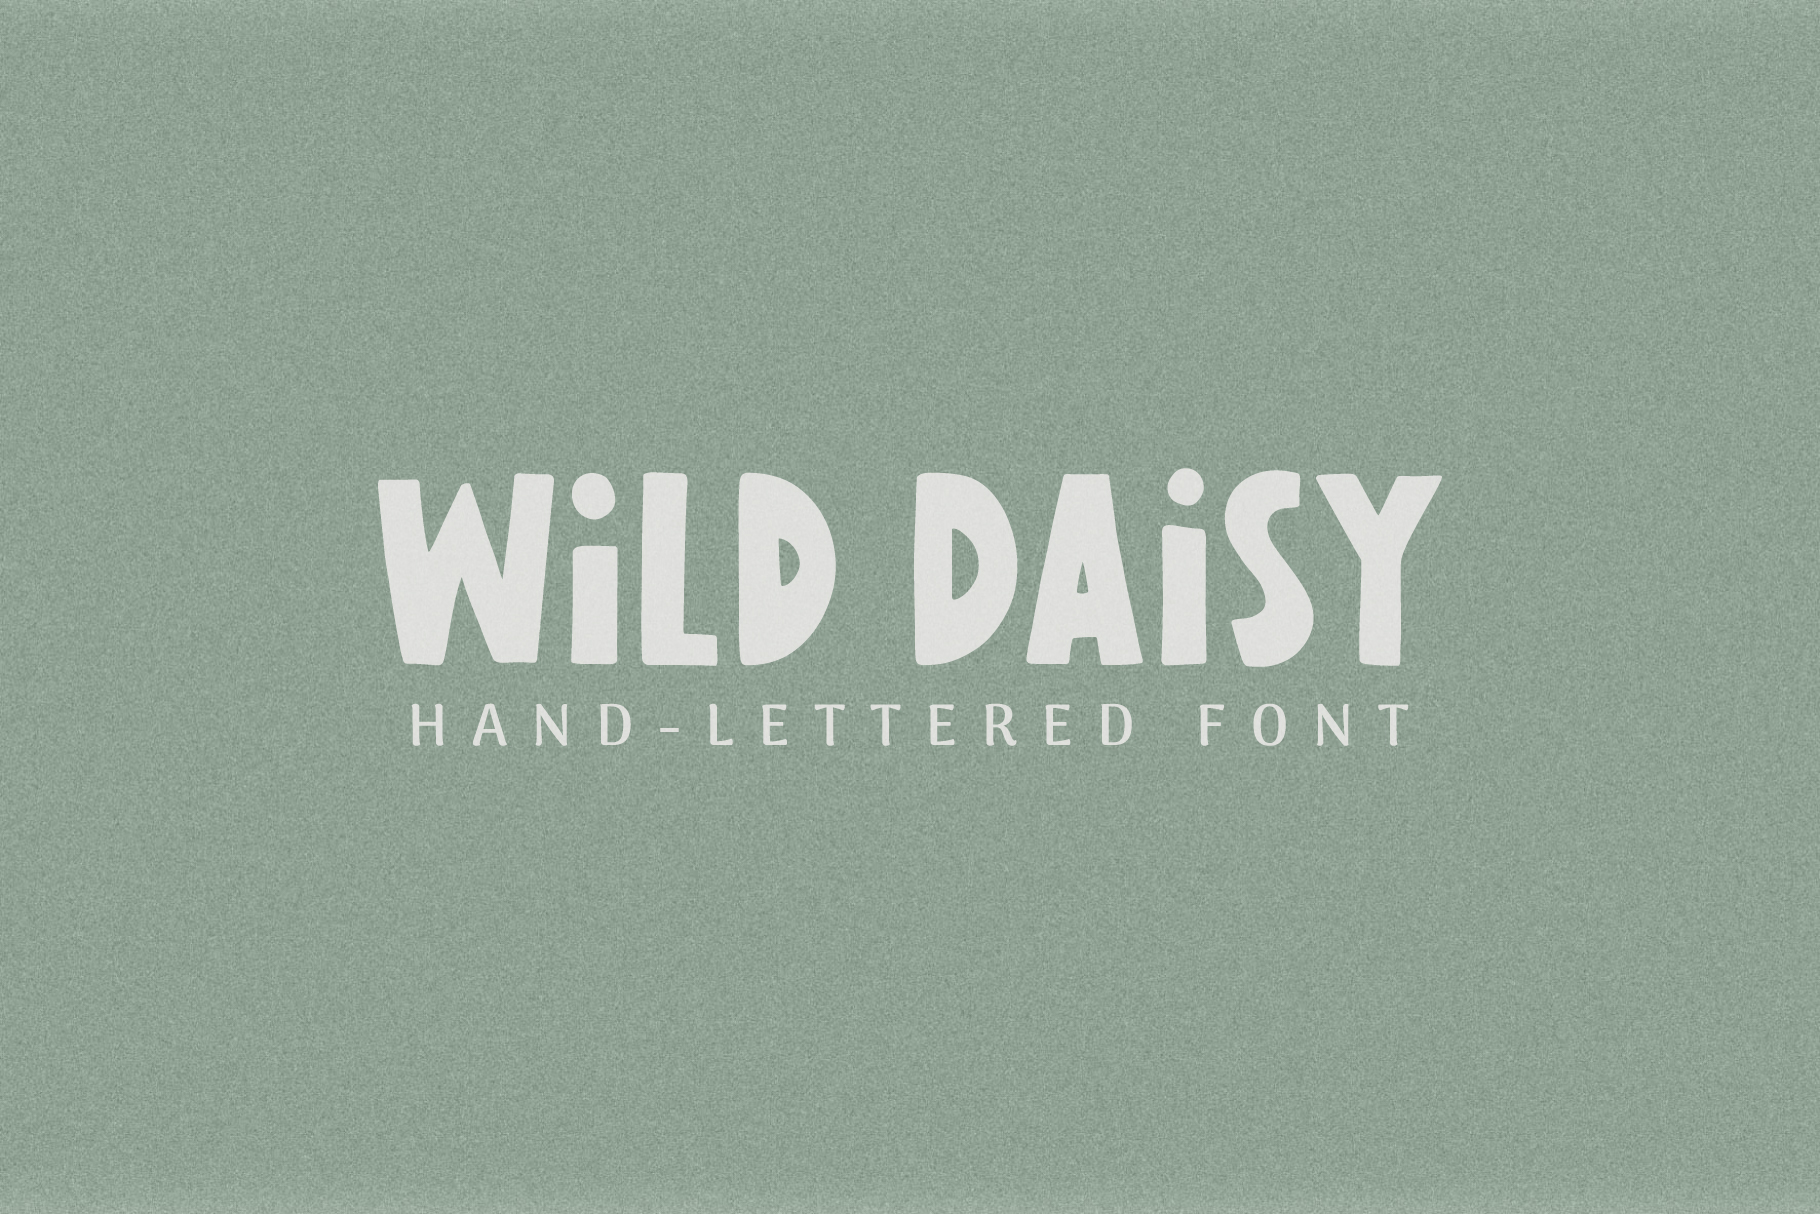 Wild Daisy | Hand-Lettered Font example image 1